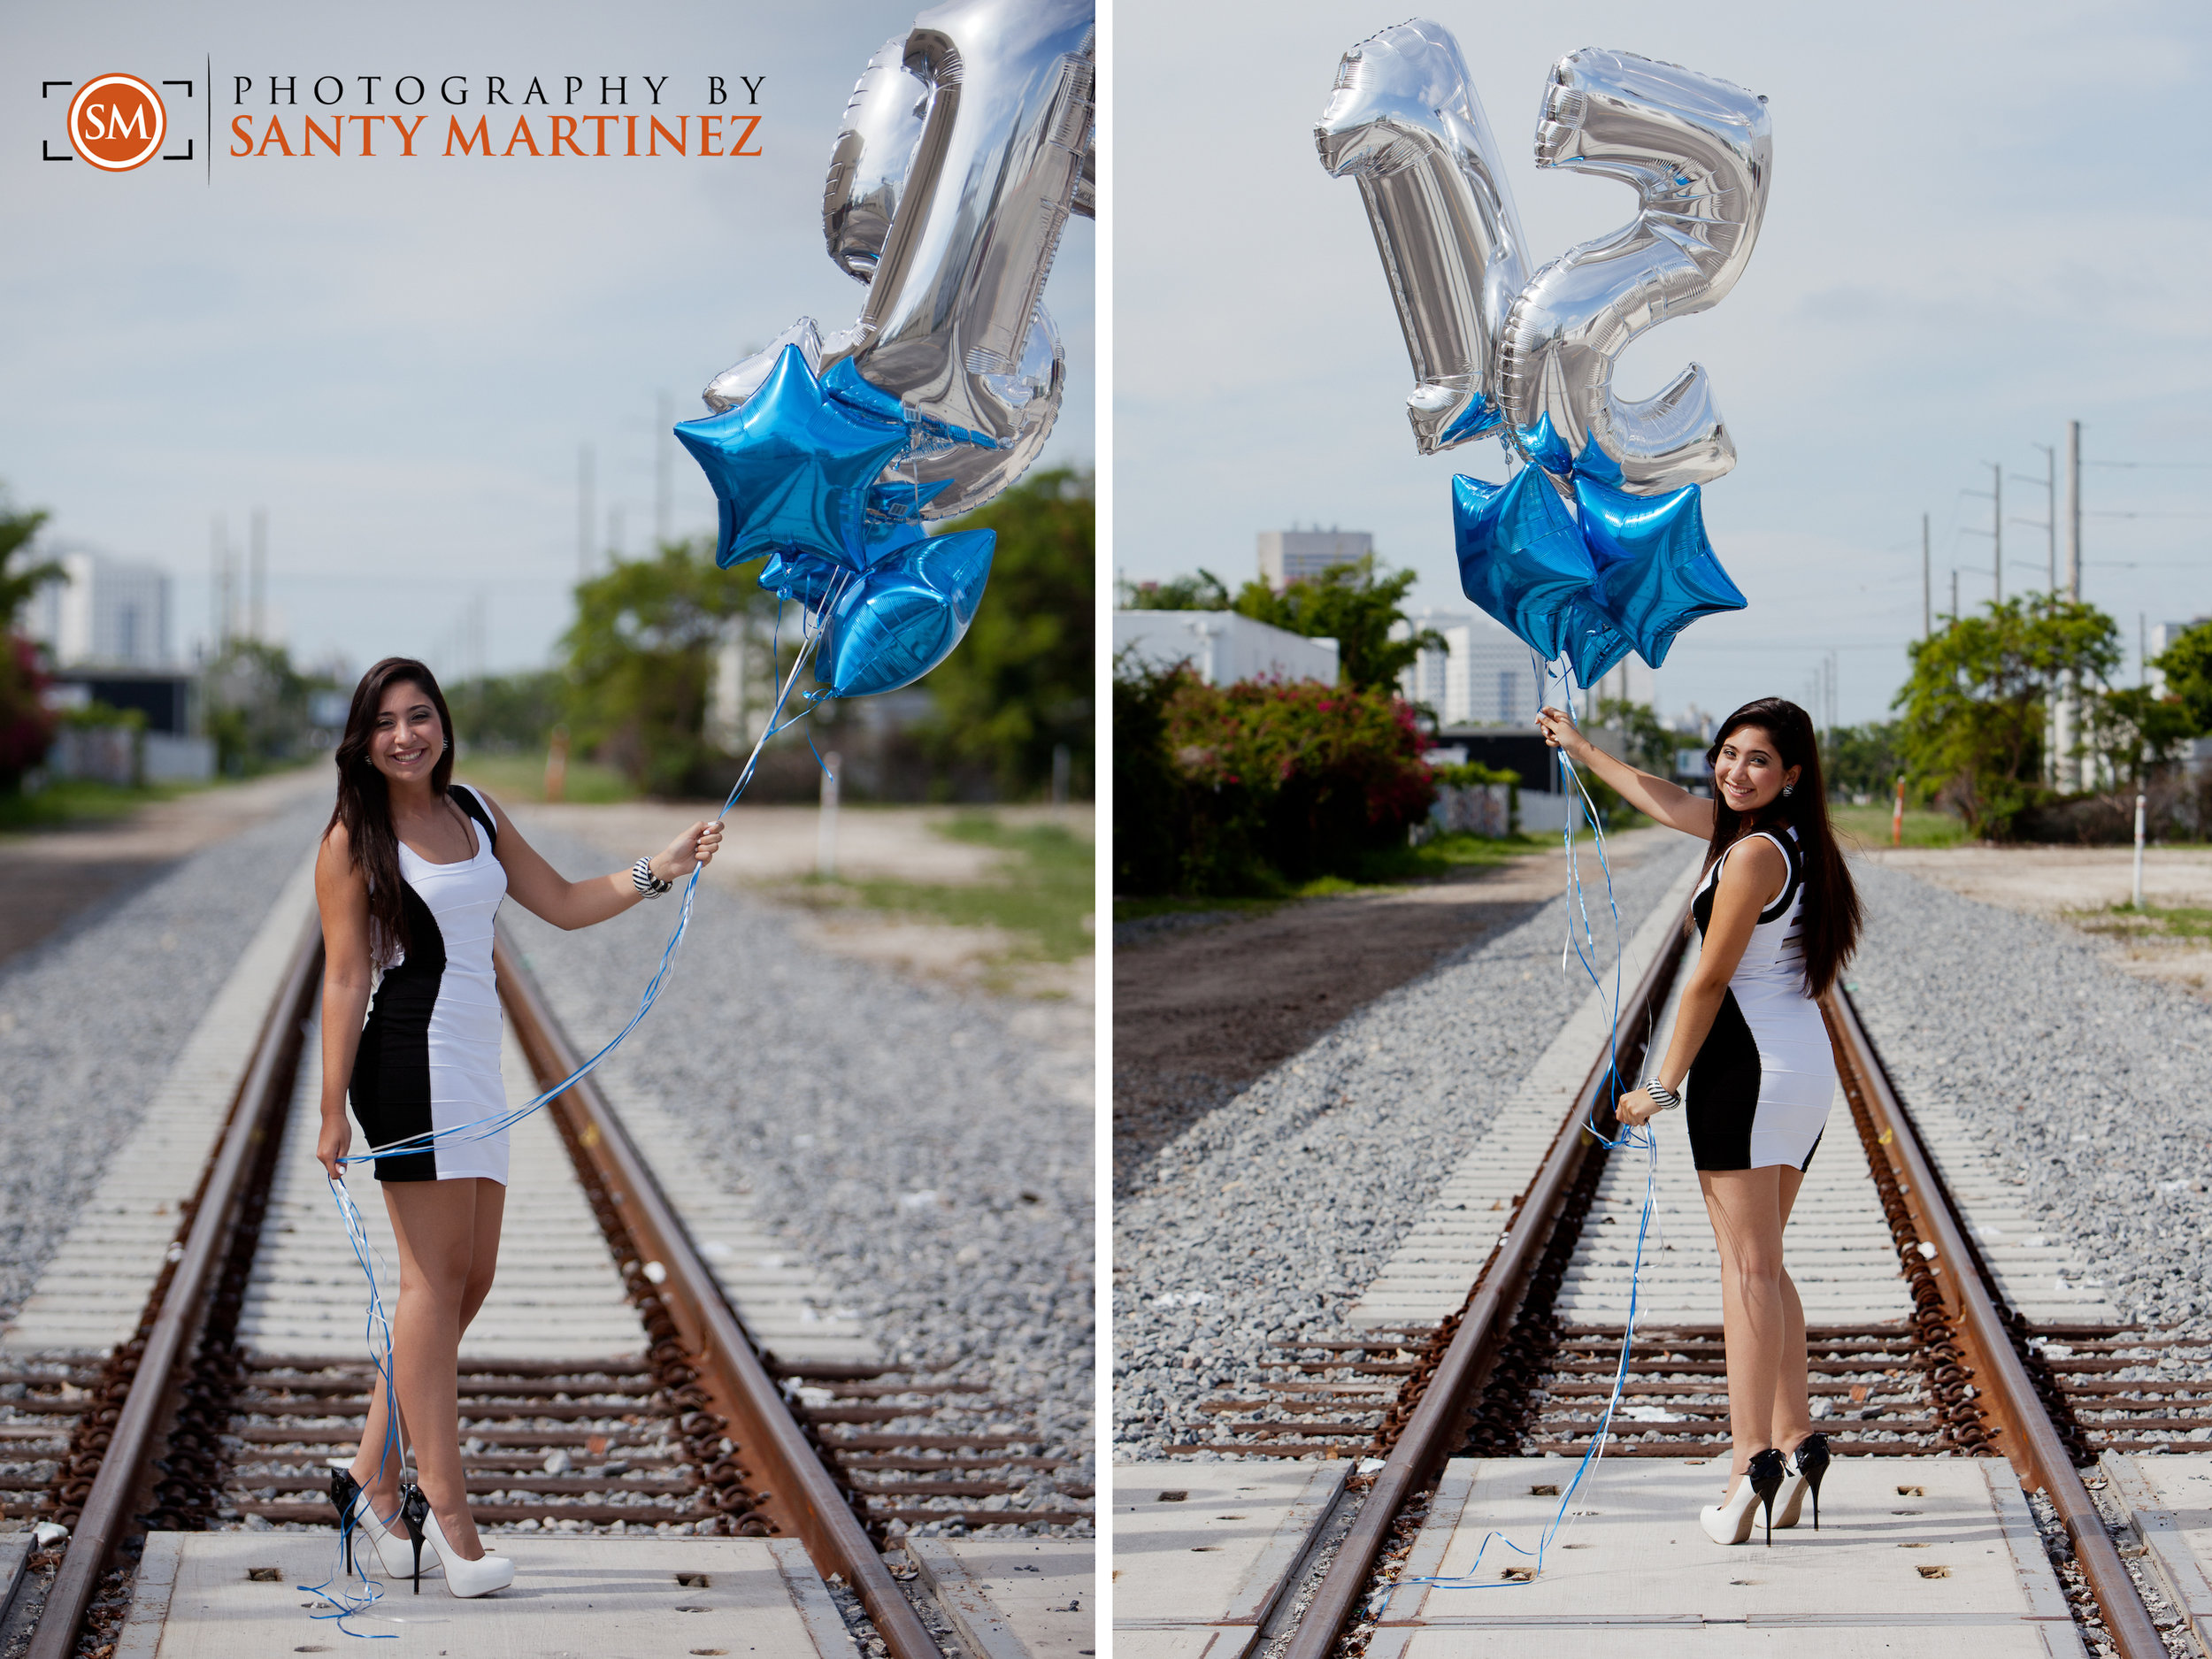 Miami Quinces Photographers - Santy Martinez - - 2.jpg